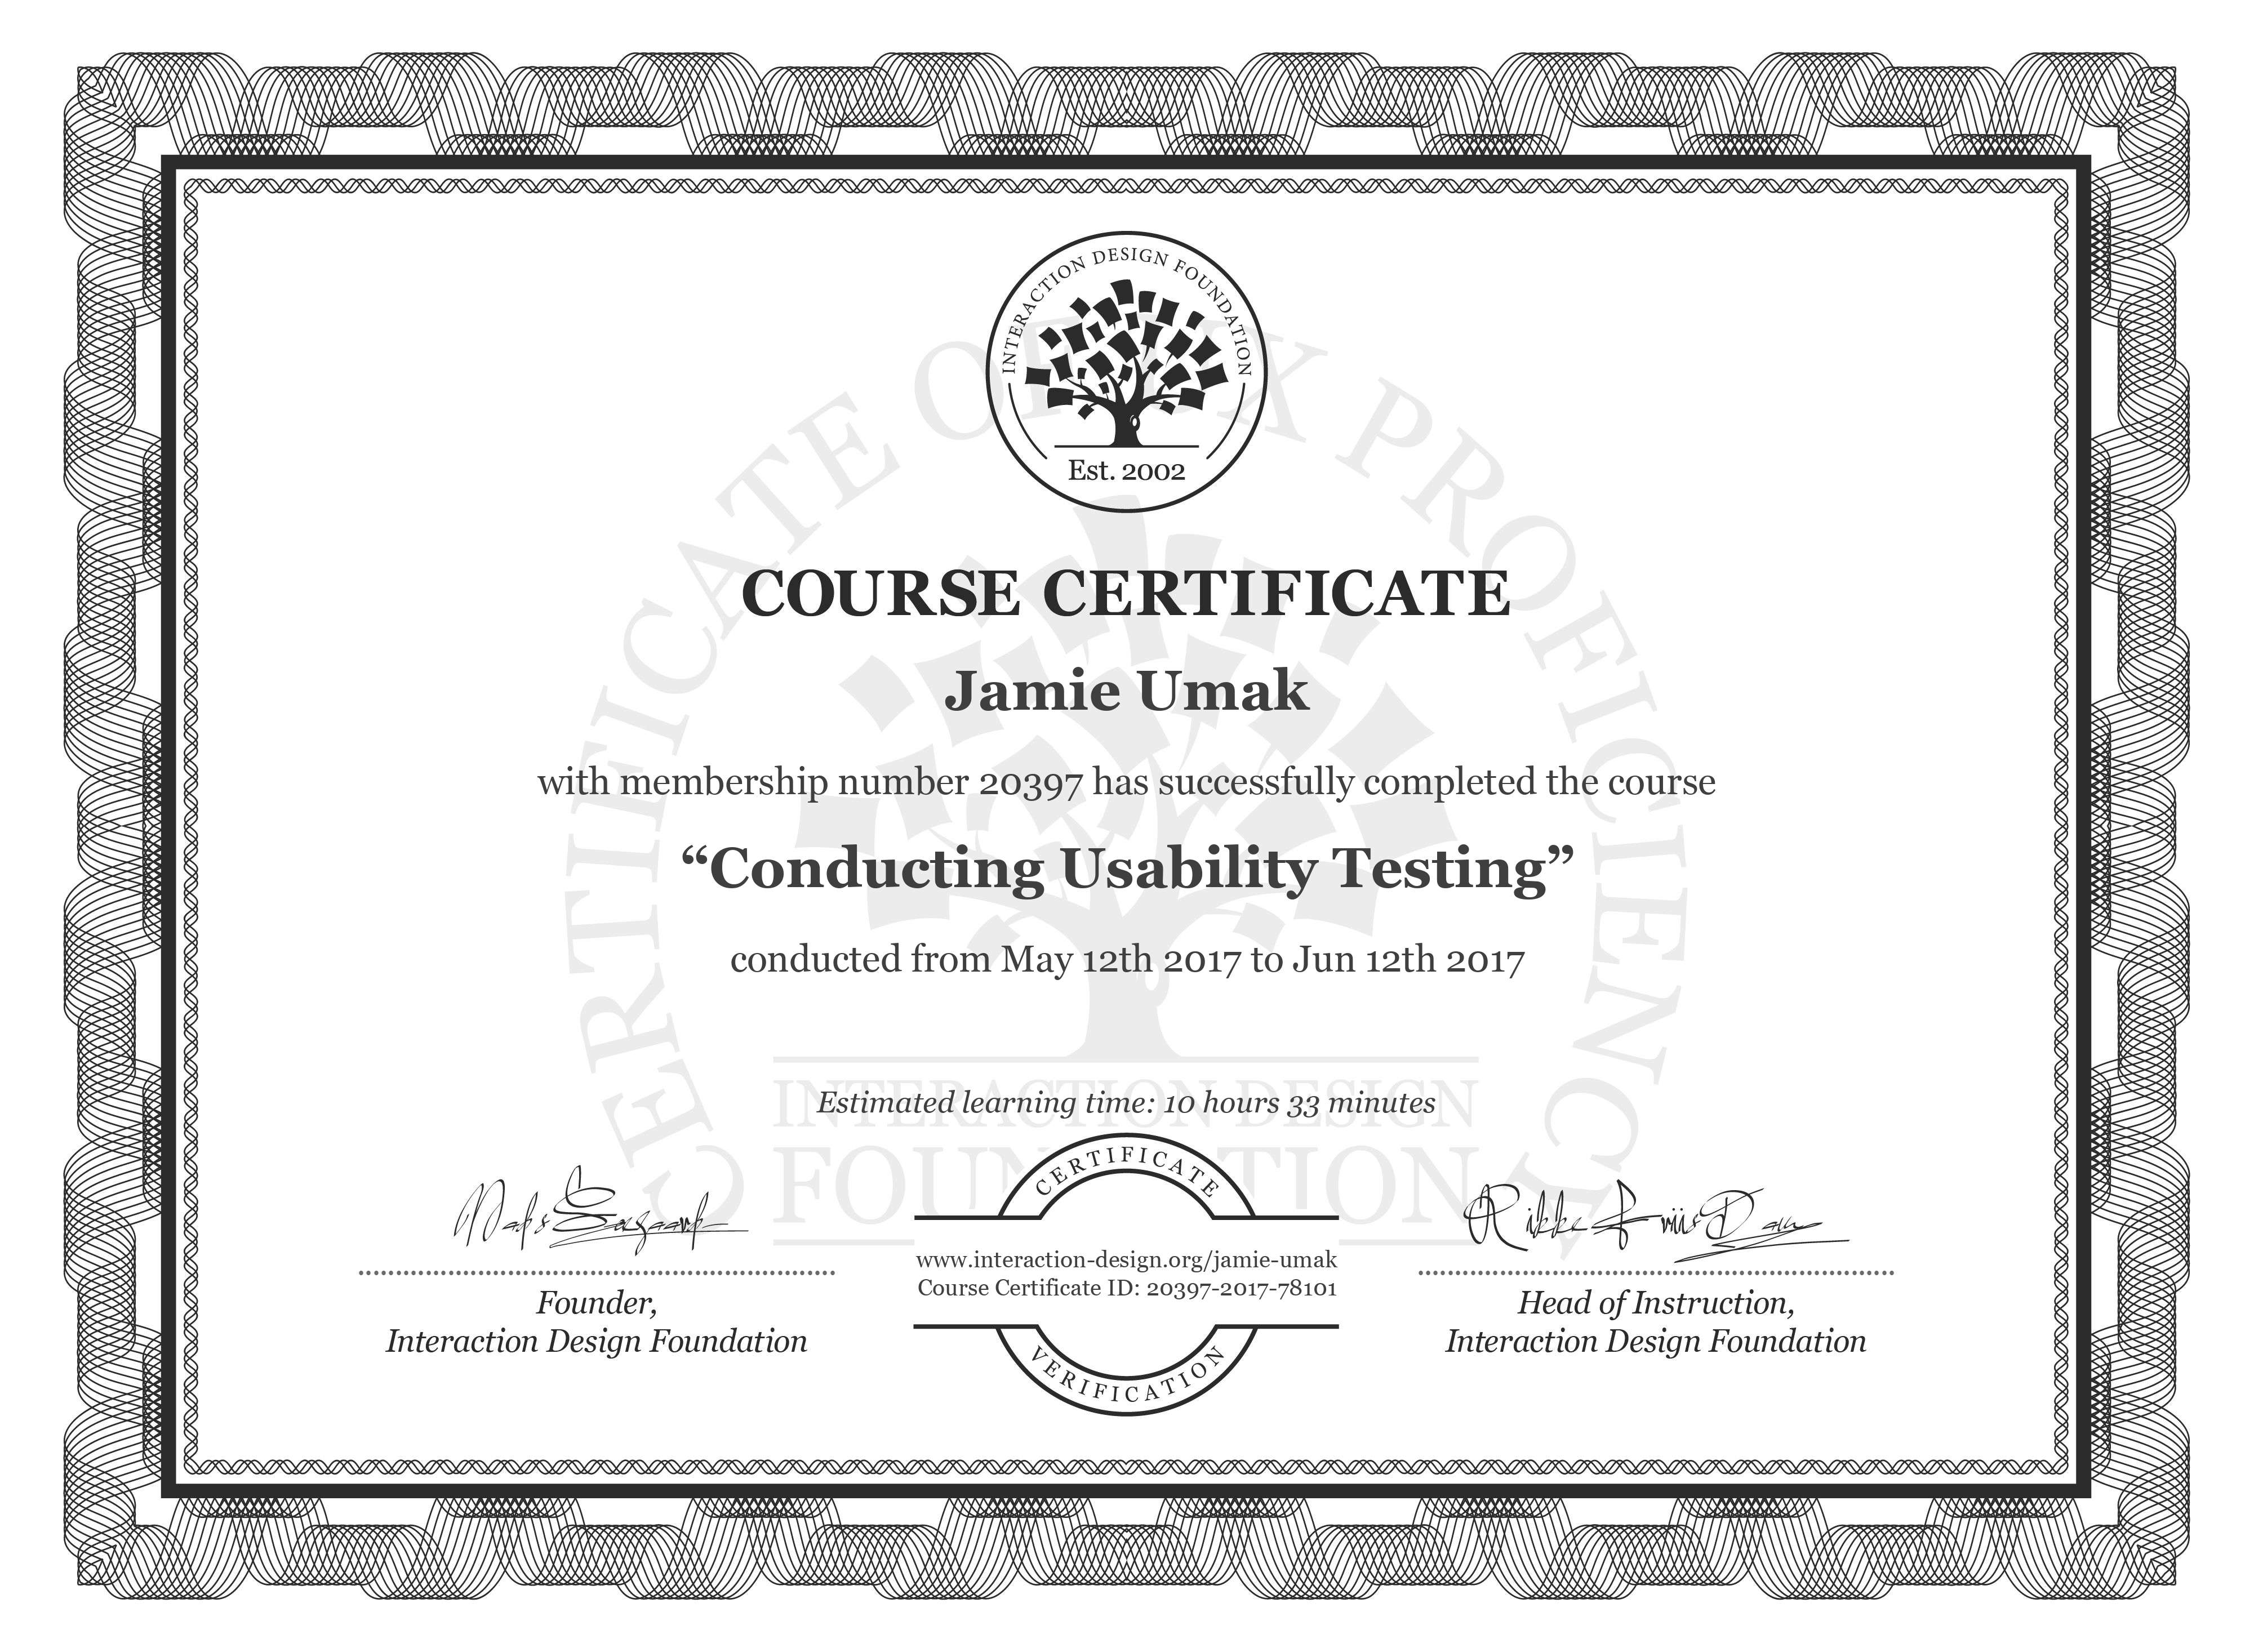 Jamie Umak: Course Certificate - Conducting Usability Testing